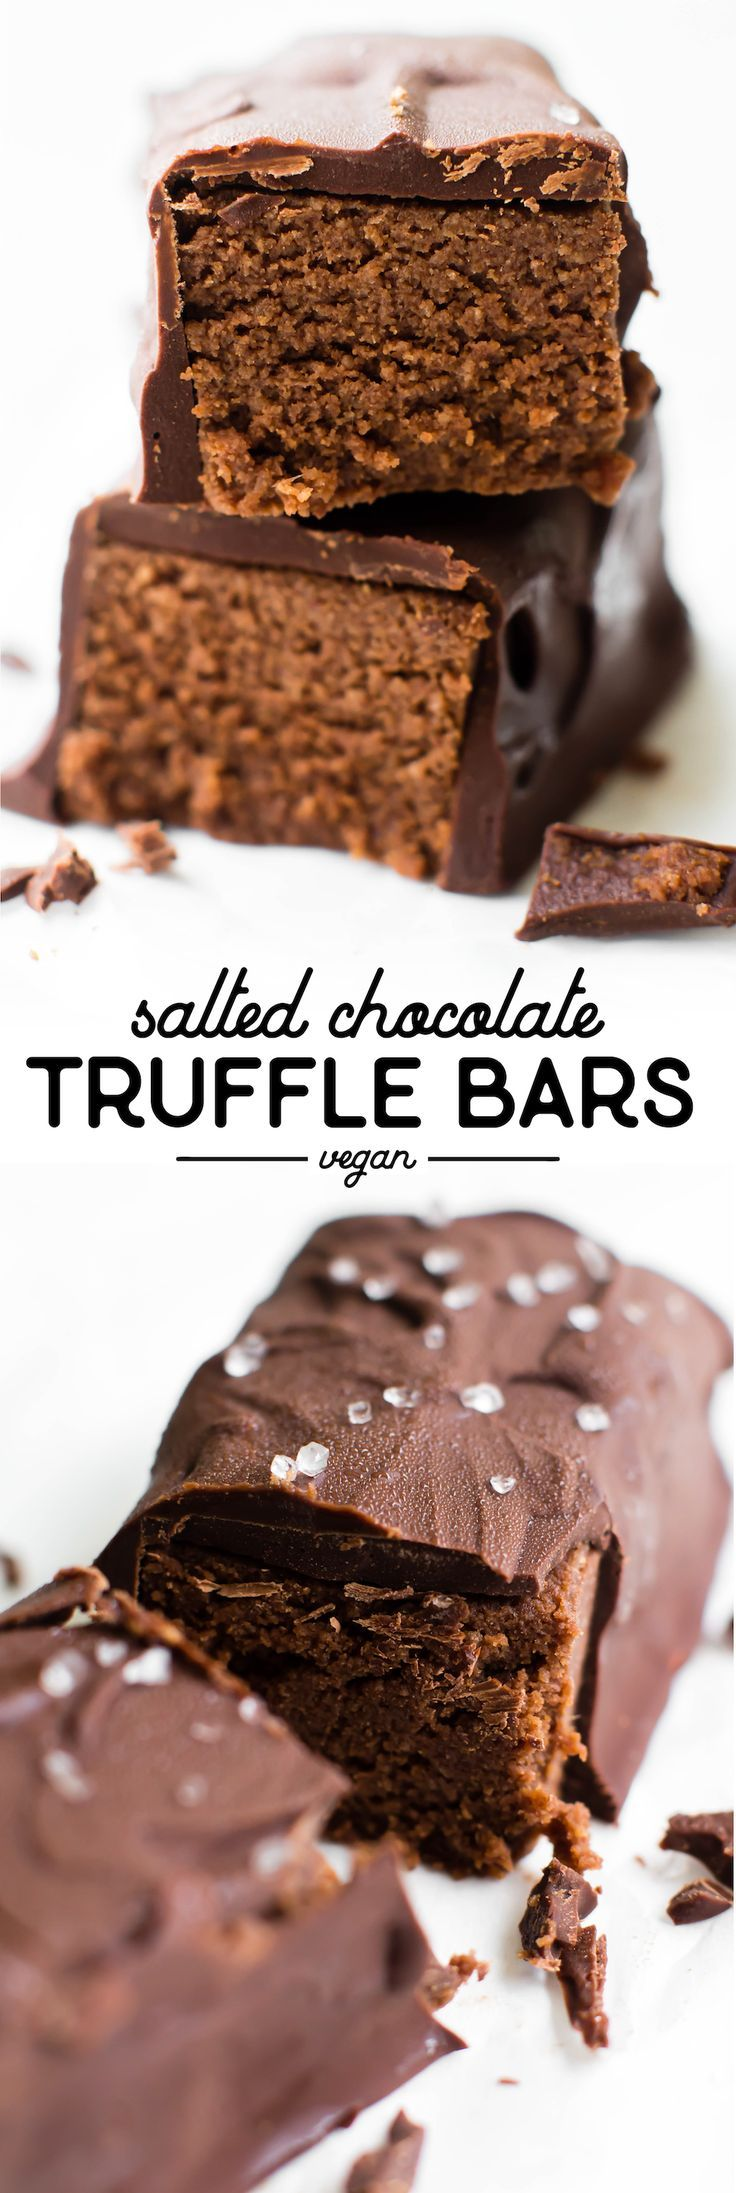 Rich creamy-meets-fluffy filling blanketed in semi-sweet chocolate makes these Salted Chocolate Truffle Bars an easy indulgence you won't be able to resist! #vegan #glutenfree